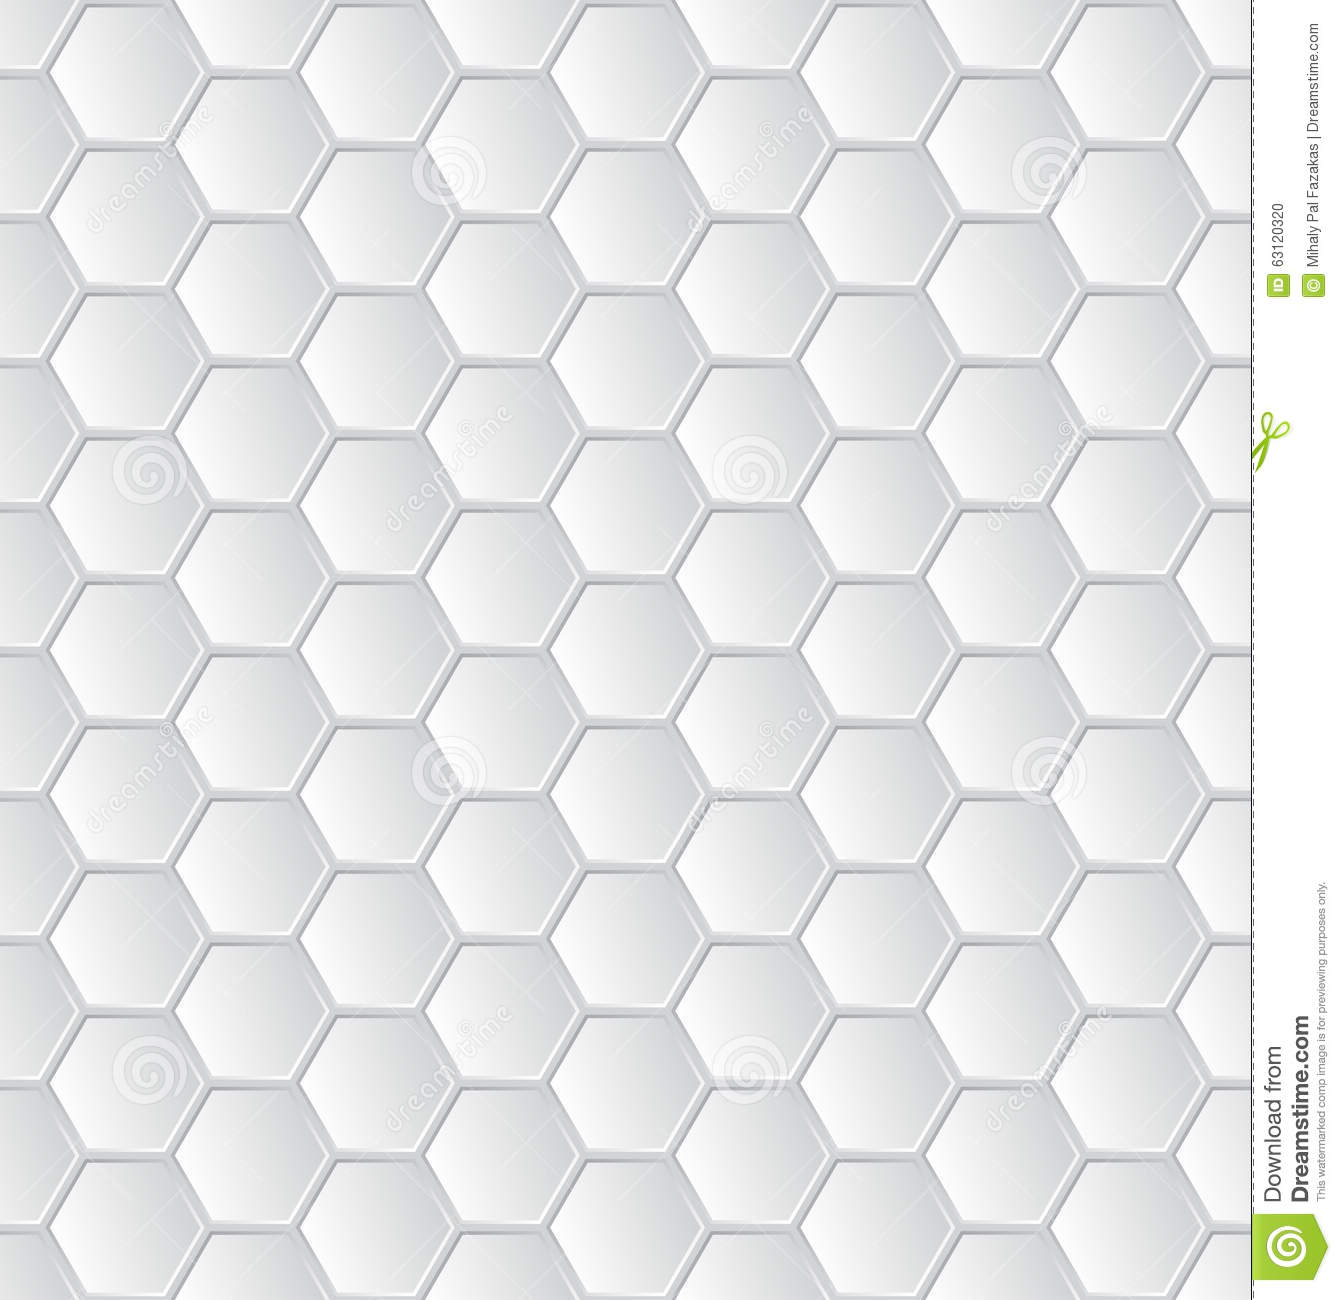 Black Quilted Wallpaper Abstract White Hexagon...